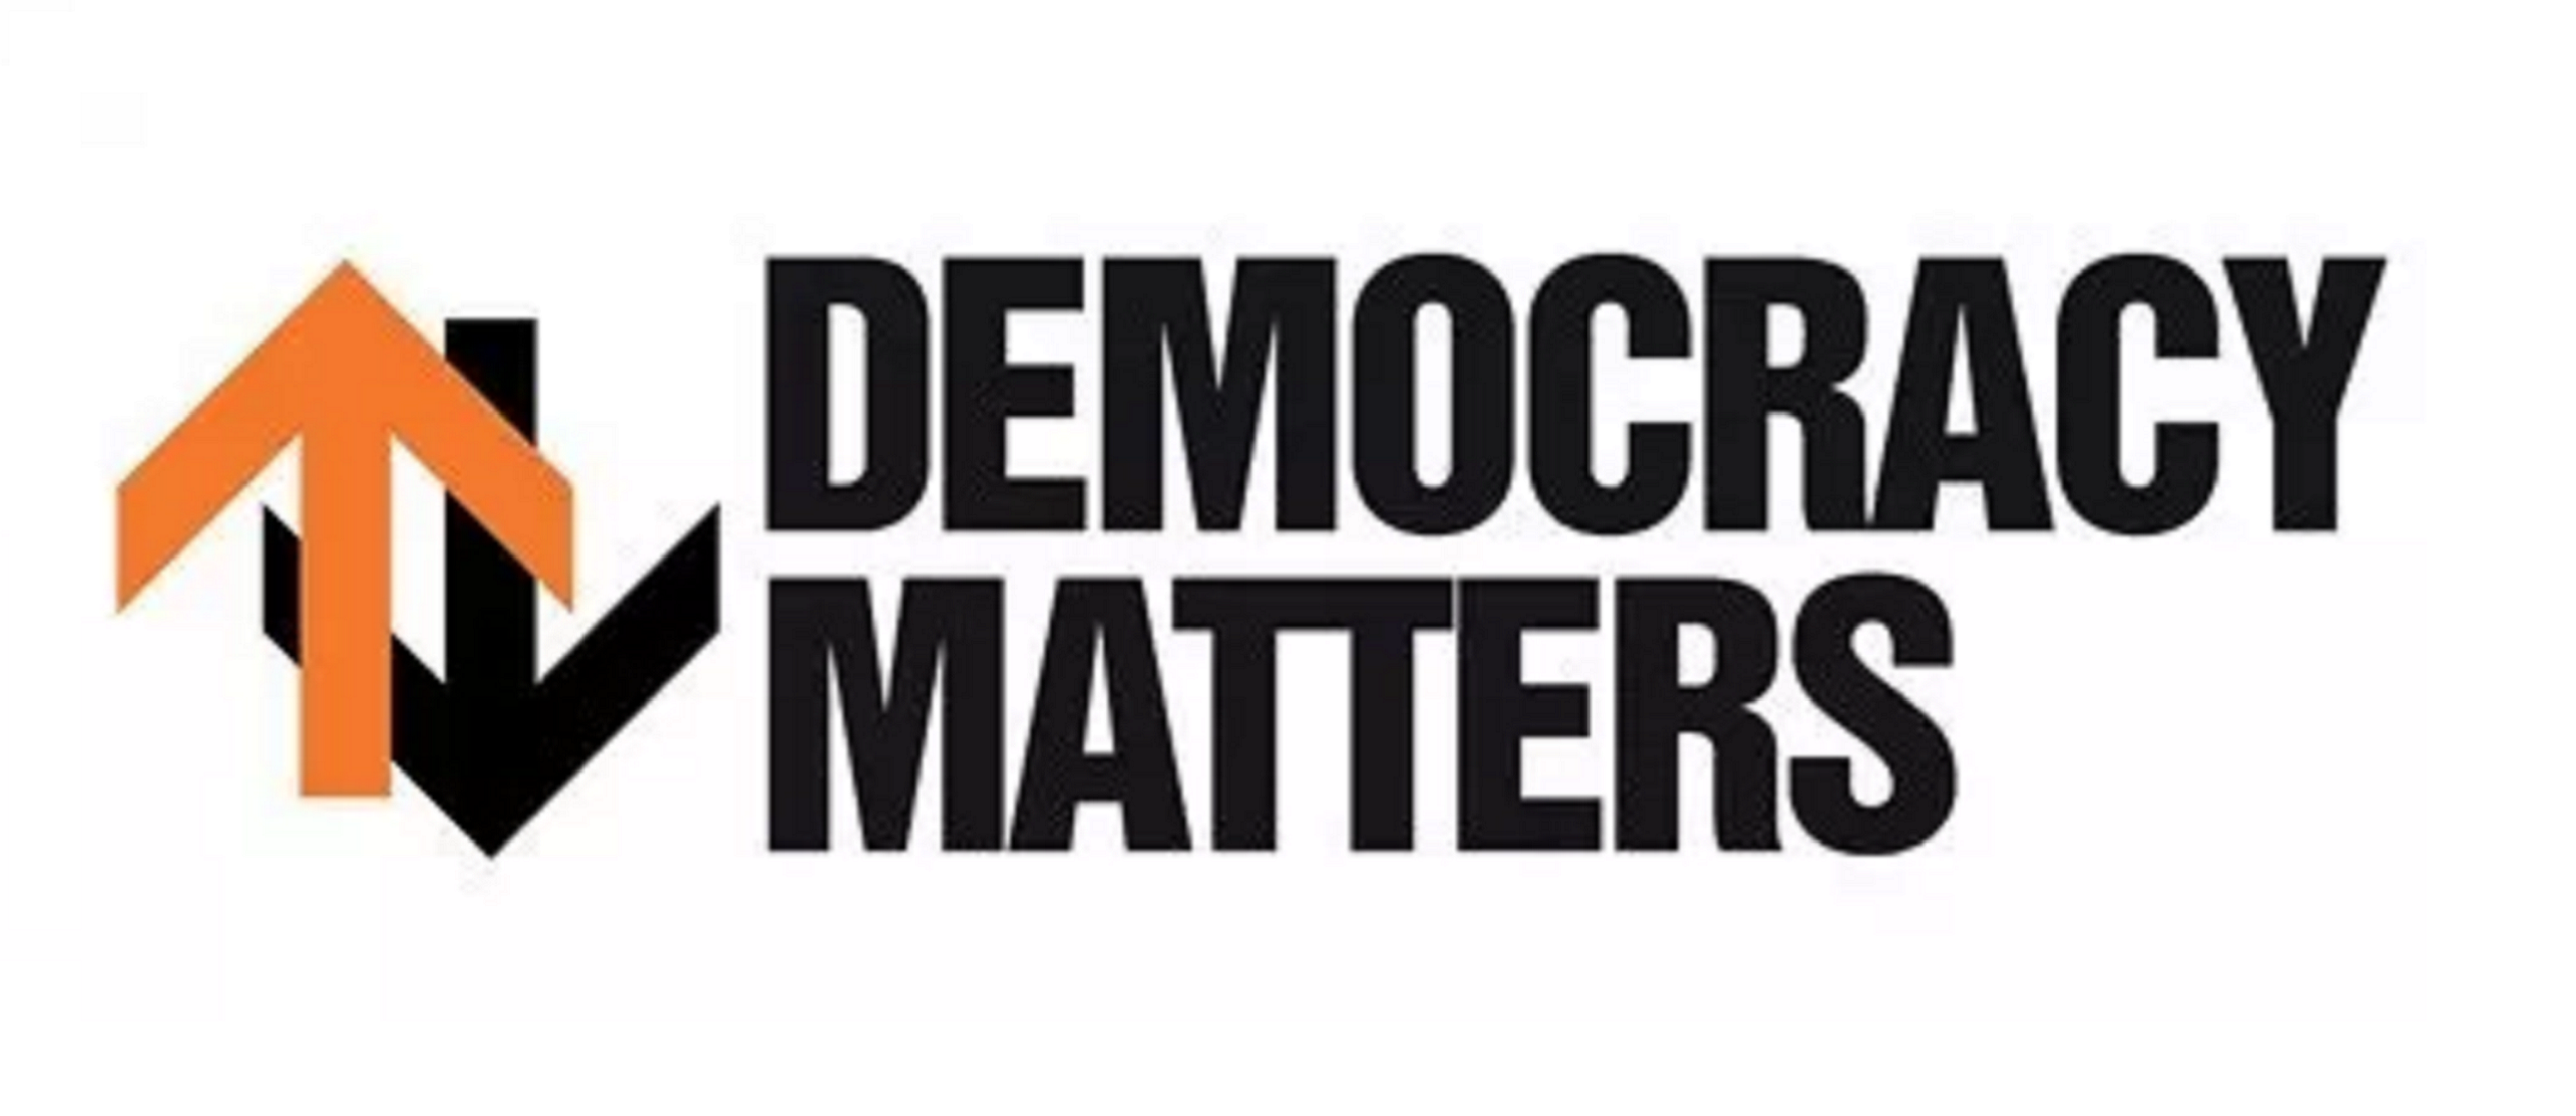 Democracy matters logo 3000x1300